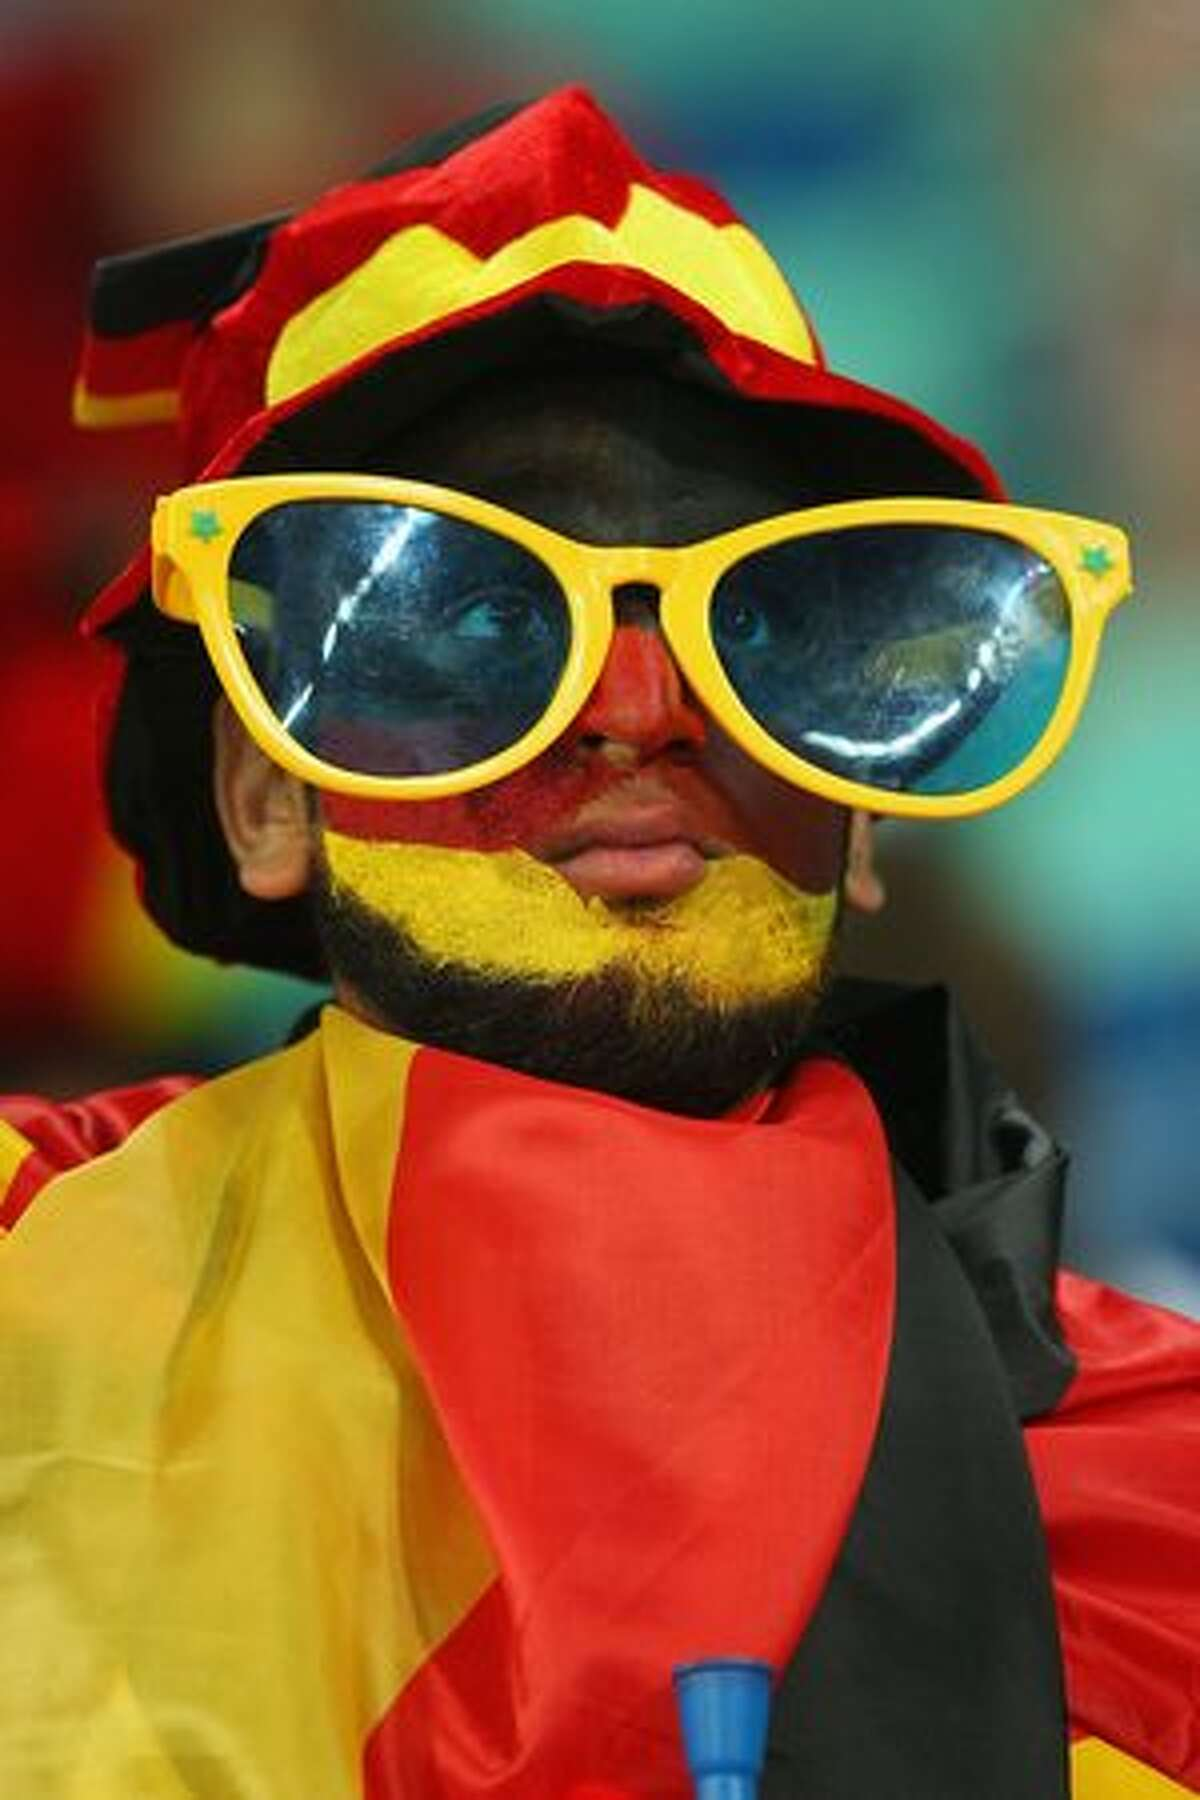 A Germany fan enjoys the atmosphere prior to the 2010 FIFA World Cup South Africa Semi Final match between Germany and Spain at Durban Stadium on July 7, 2010 in Durban, South Africa.